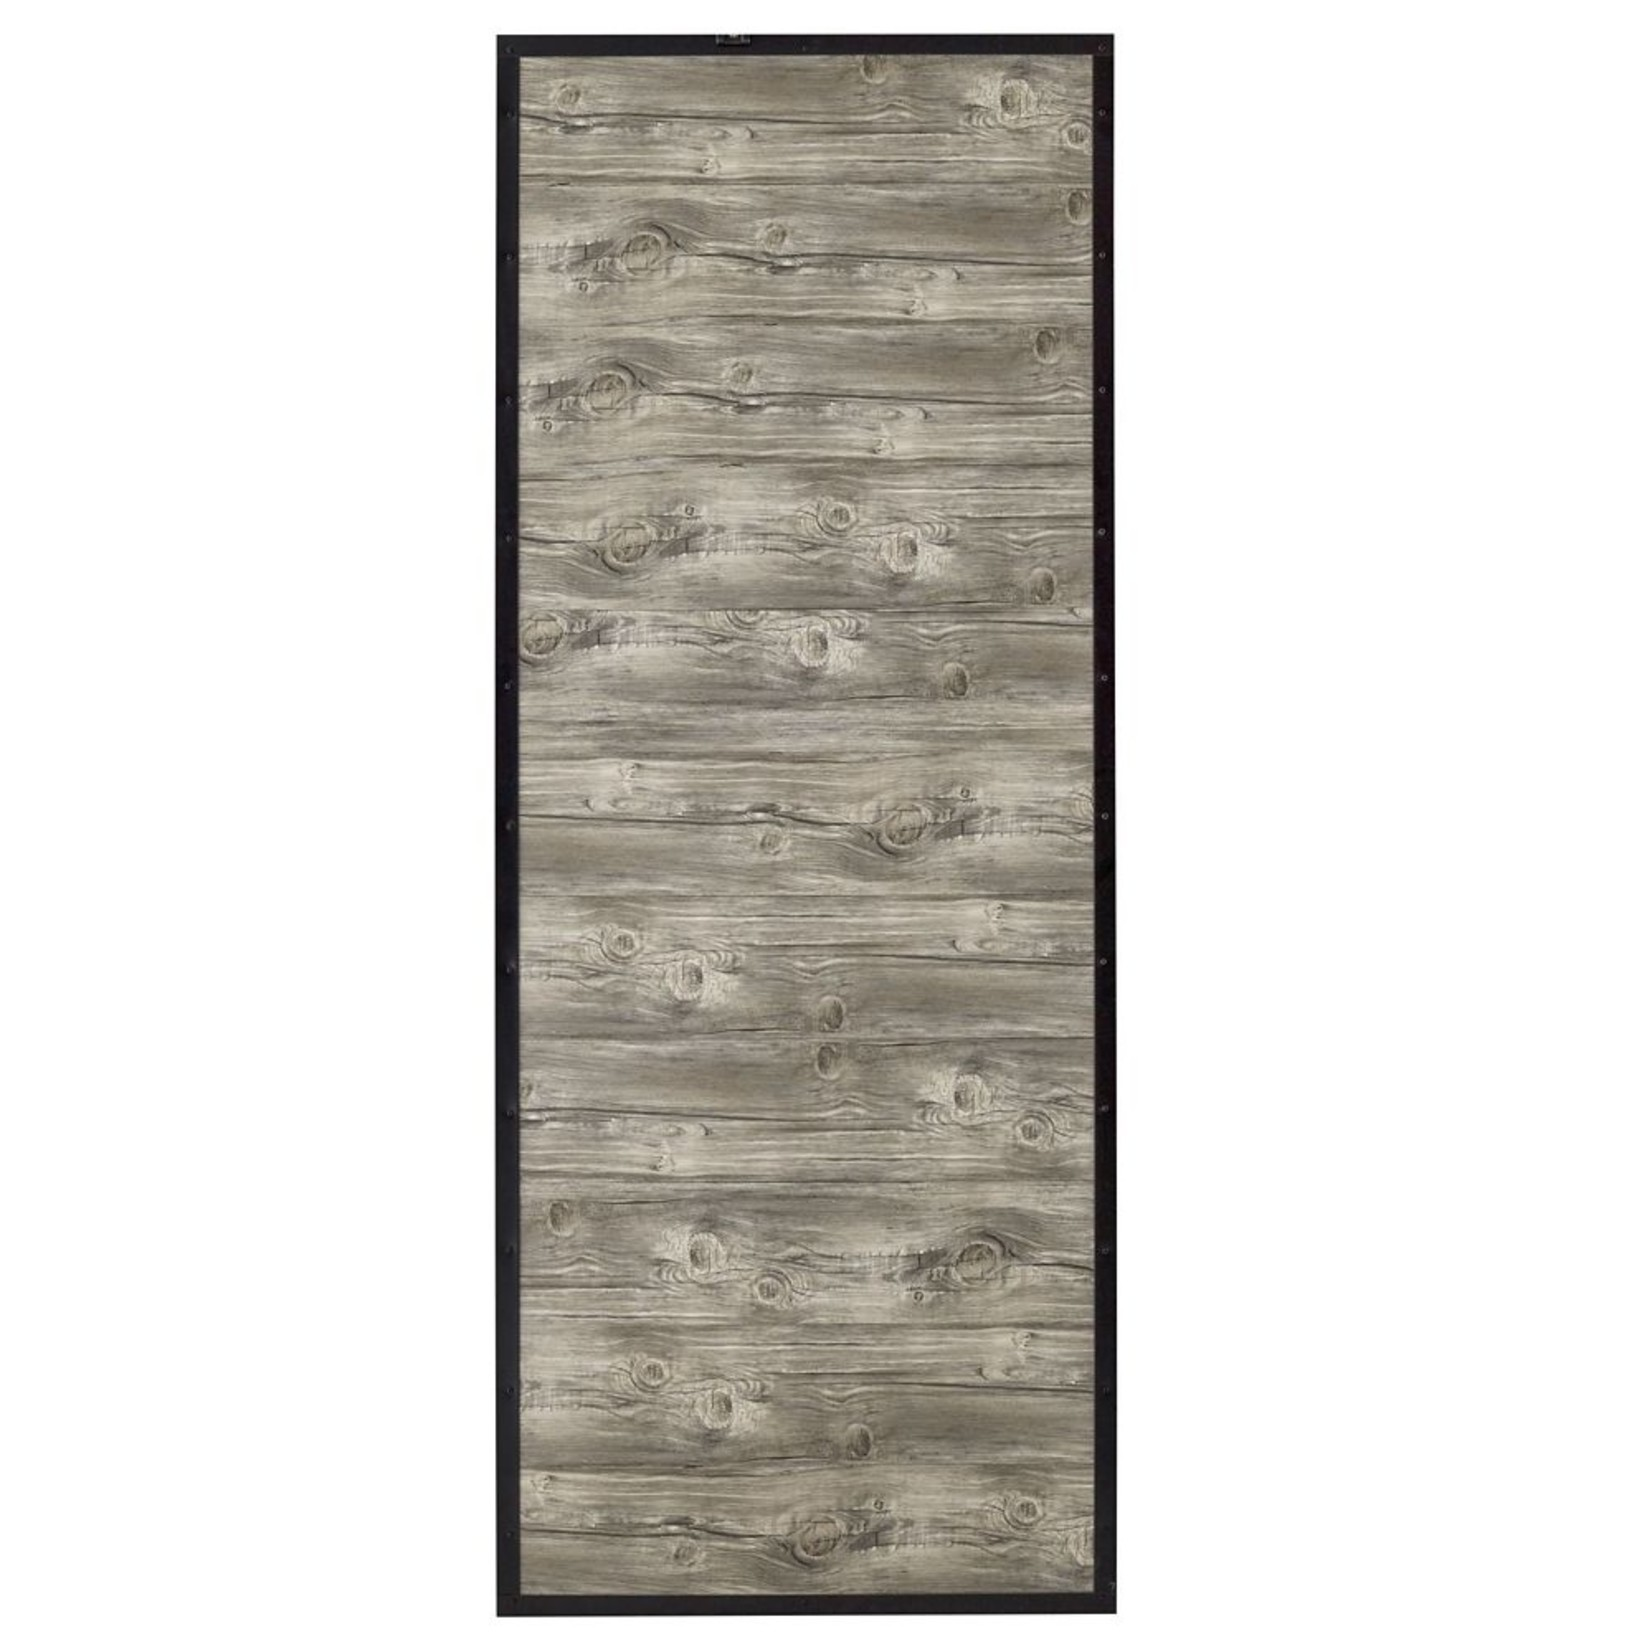 "Barn door ""shack"" 33x84"